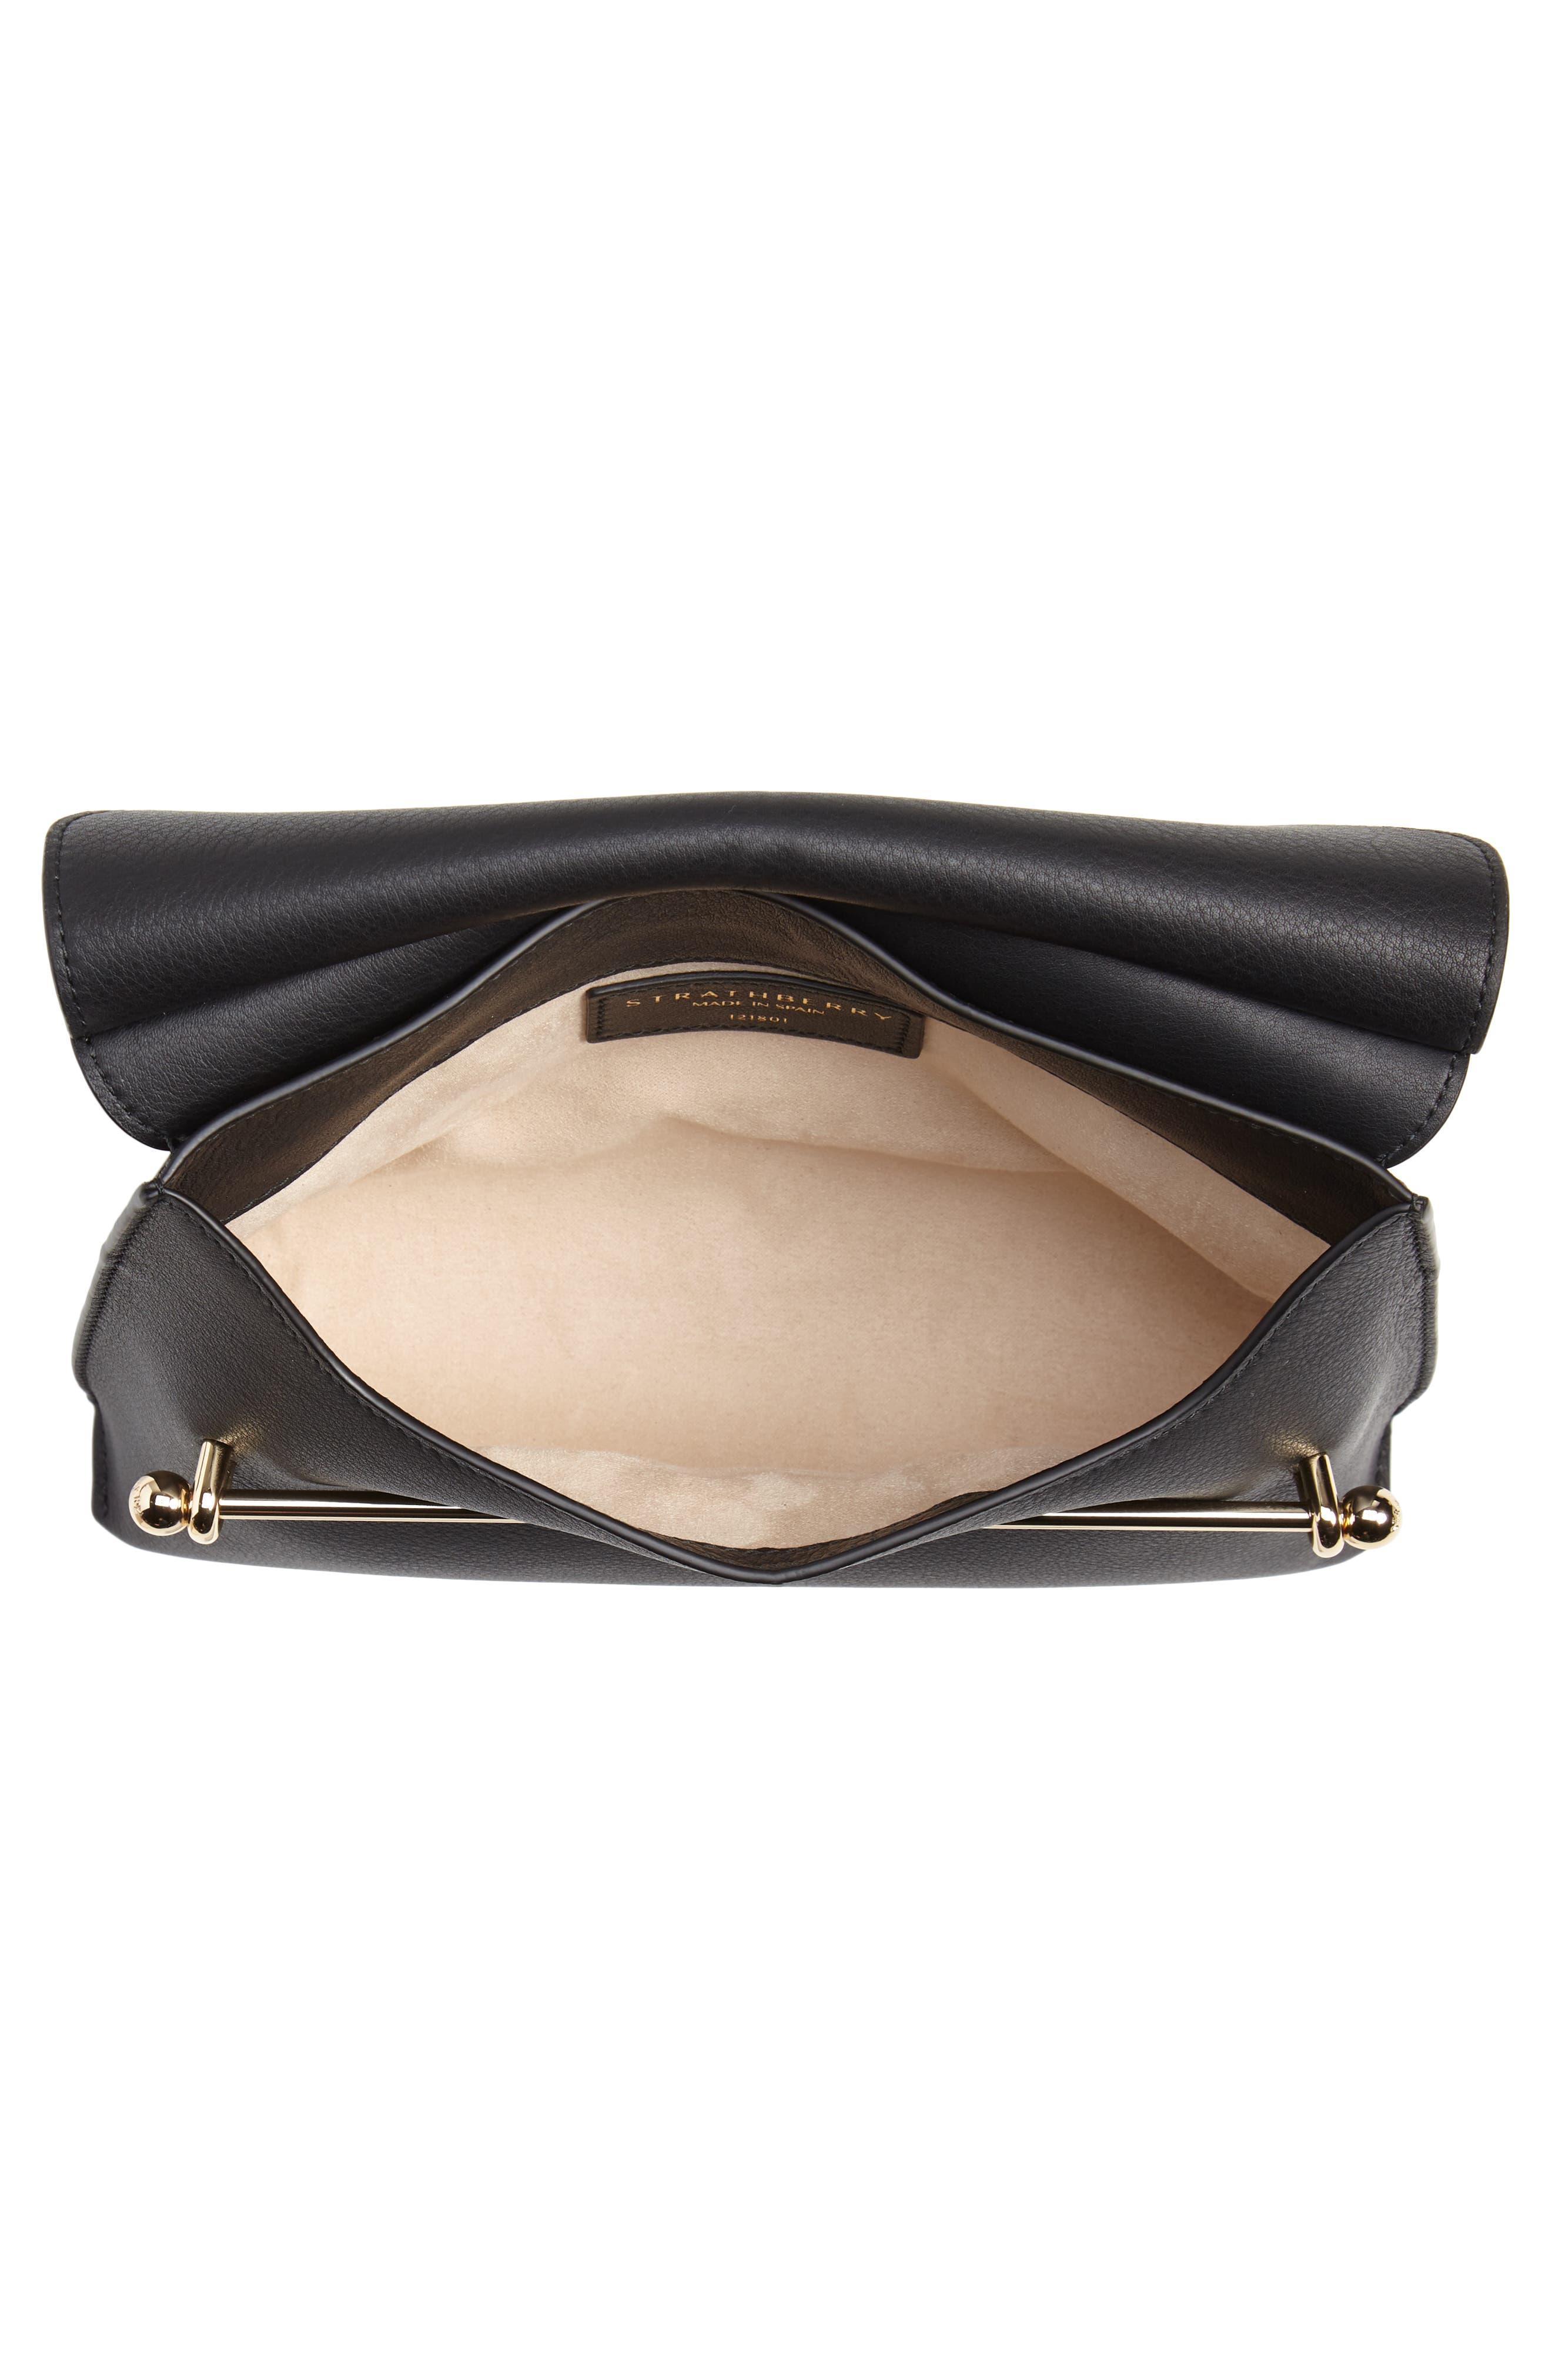 STRATHBERRY, East/West Stylist Calfskin Leather Clutch, Alternate thumbnail 4, color, BLACK